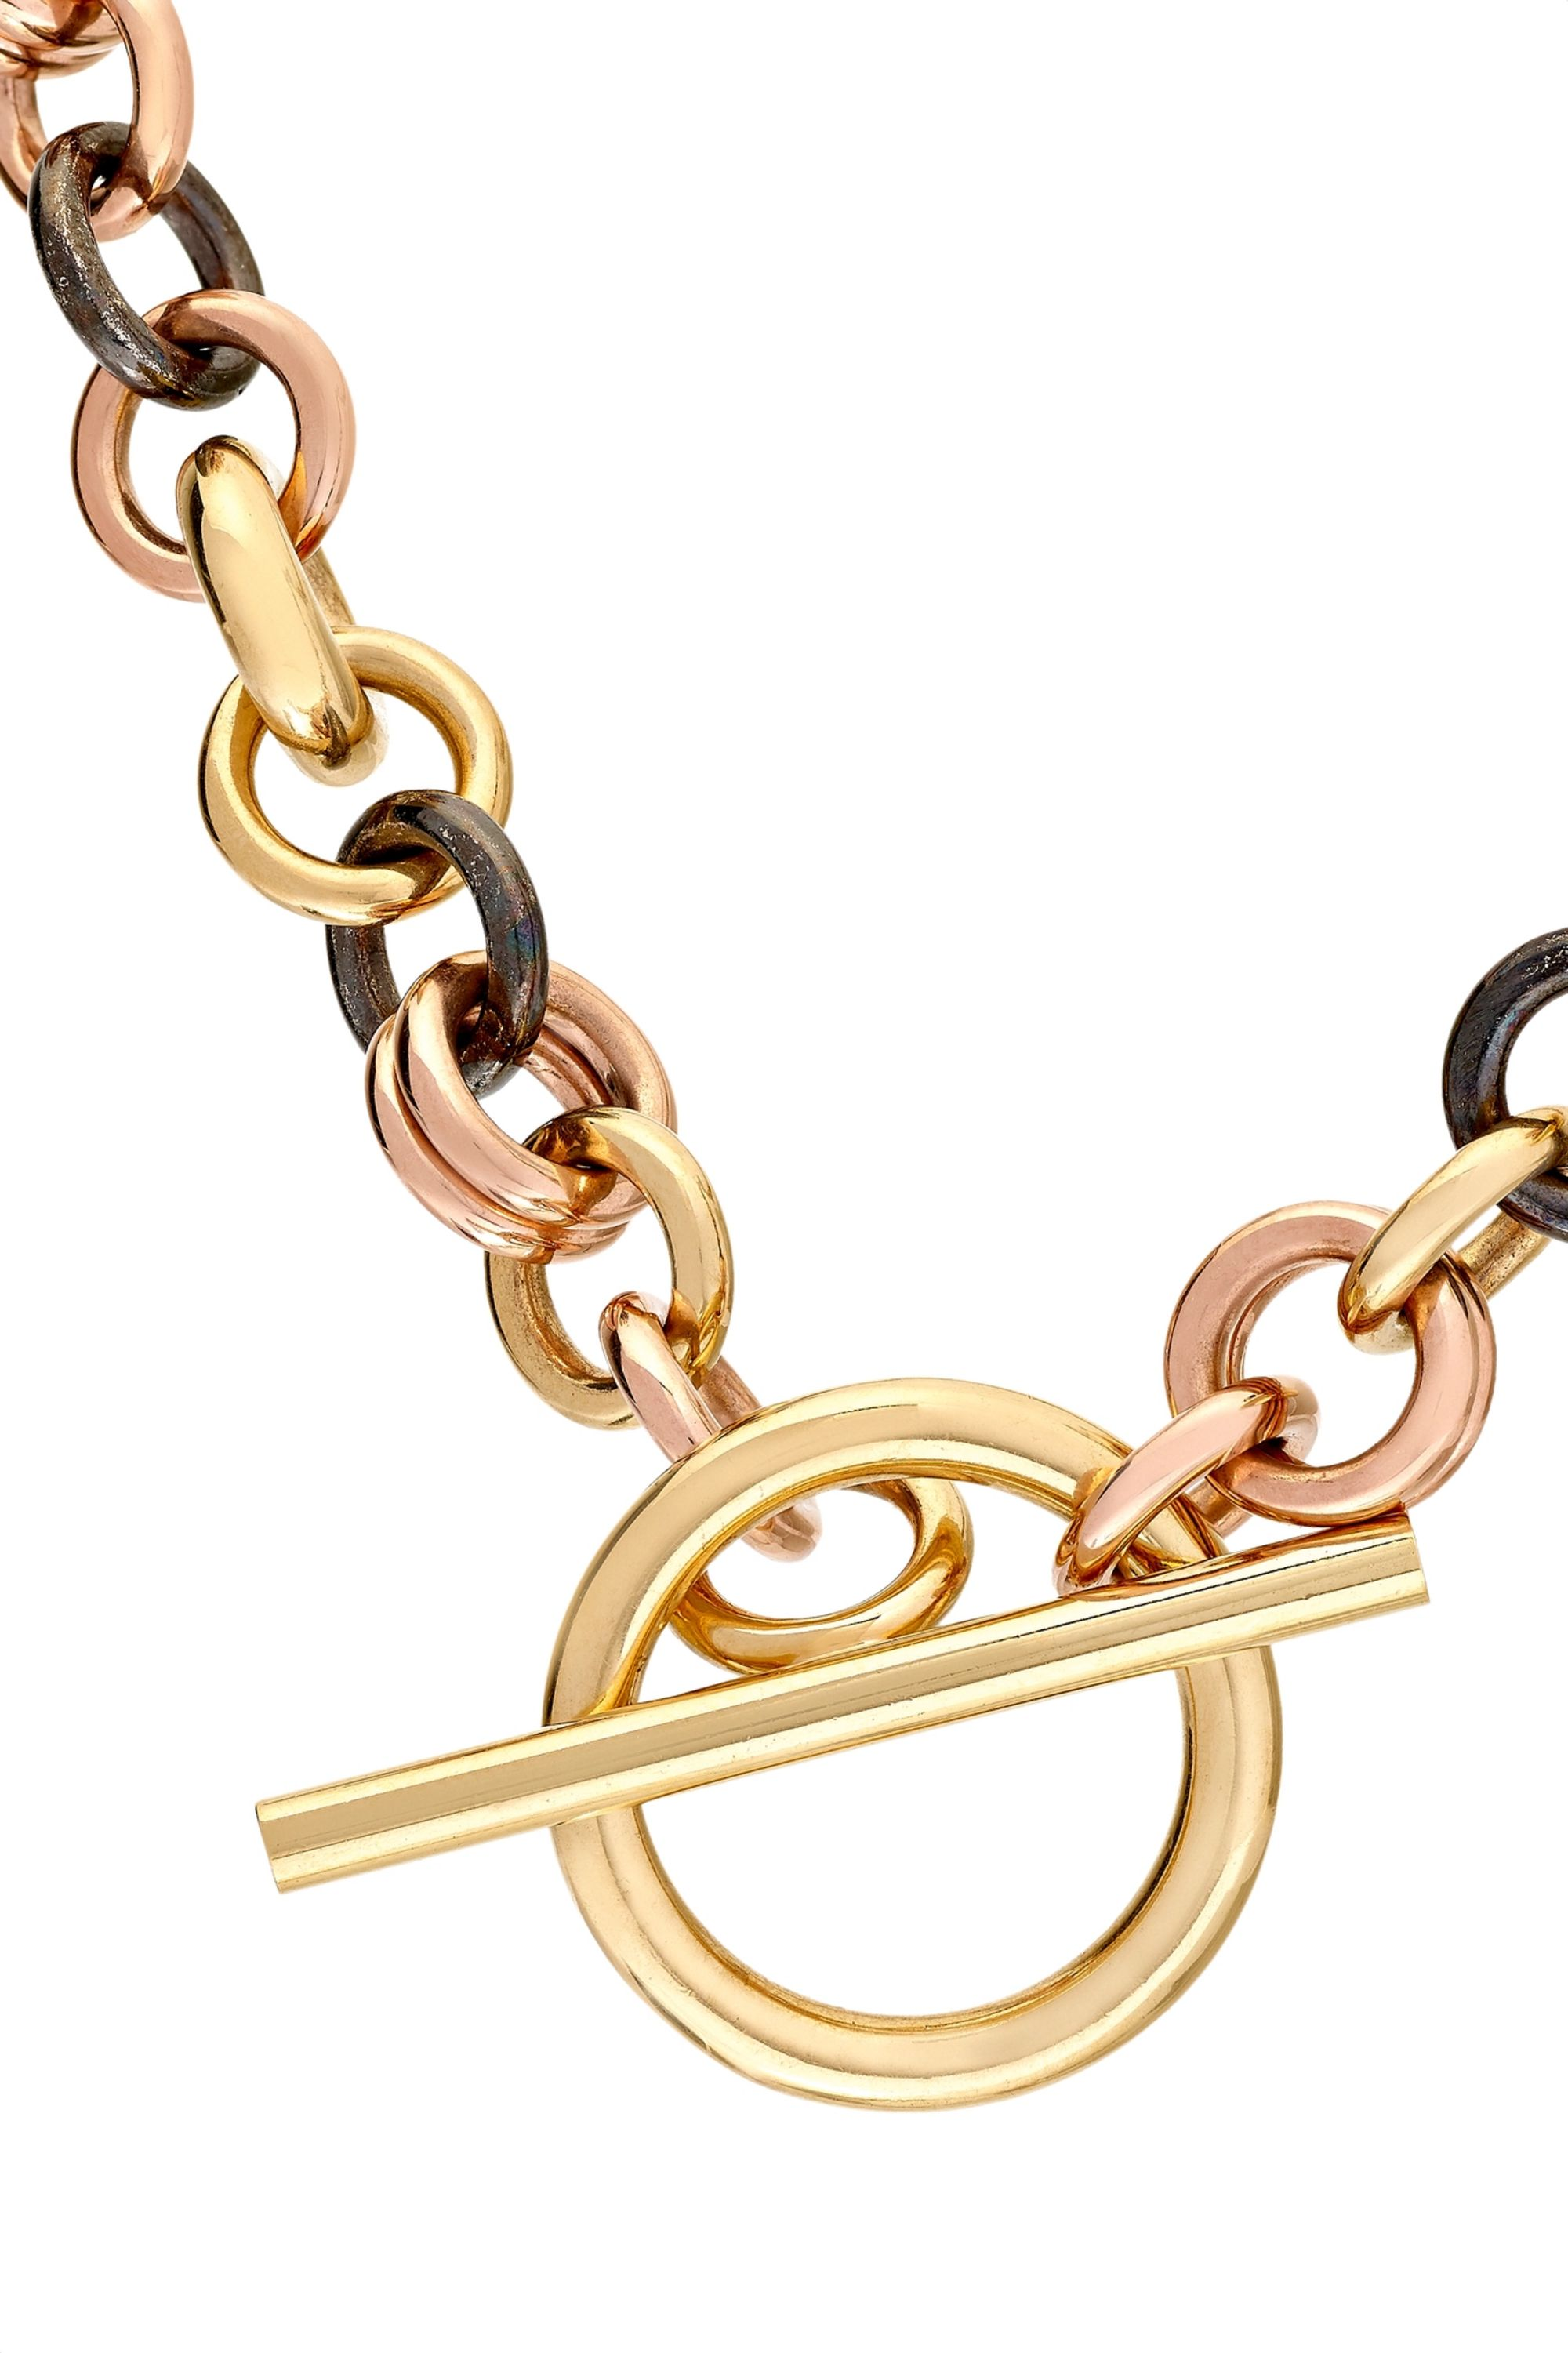 Spinelli Kilcollin Crux 18-karat yellow and rose gold and rhodium-plated sterling silver necklace